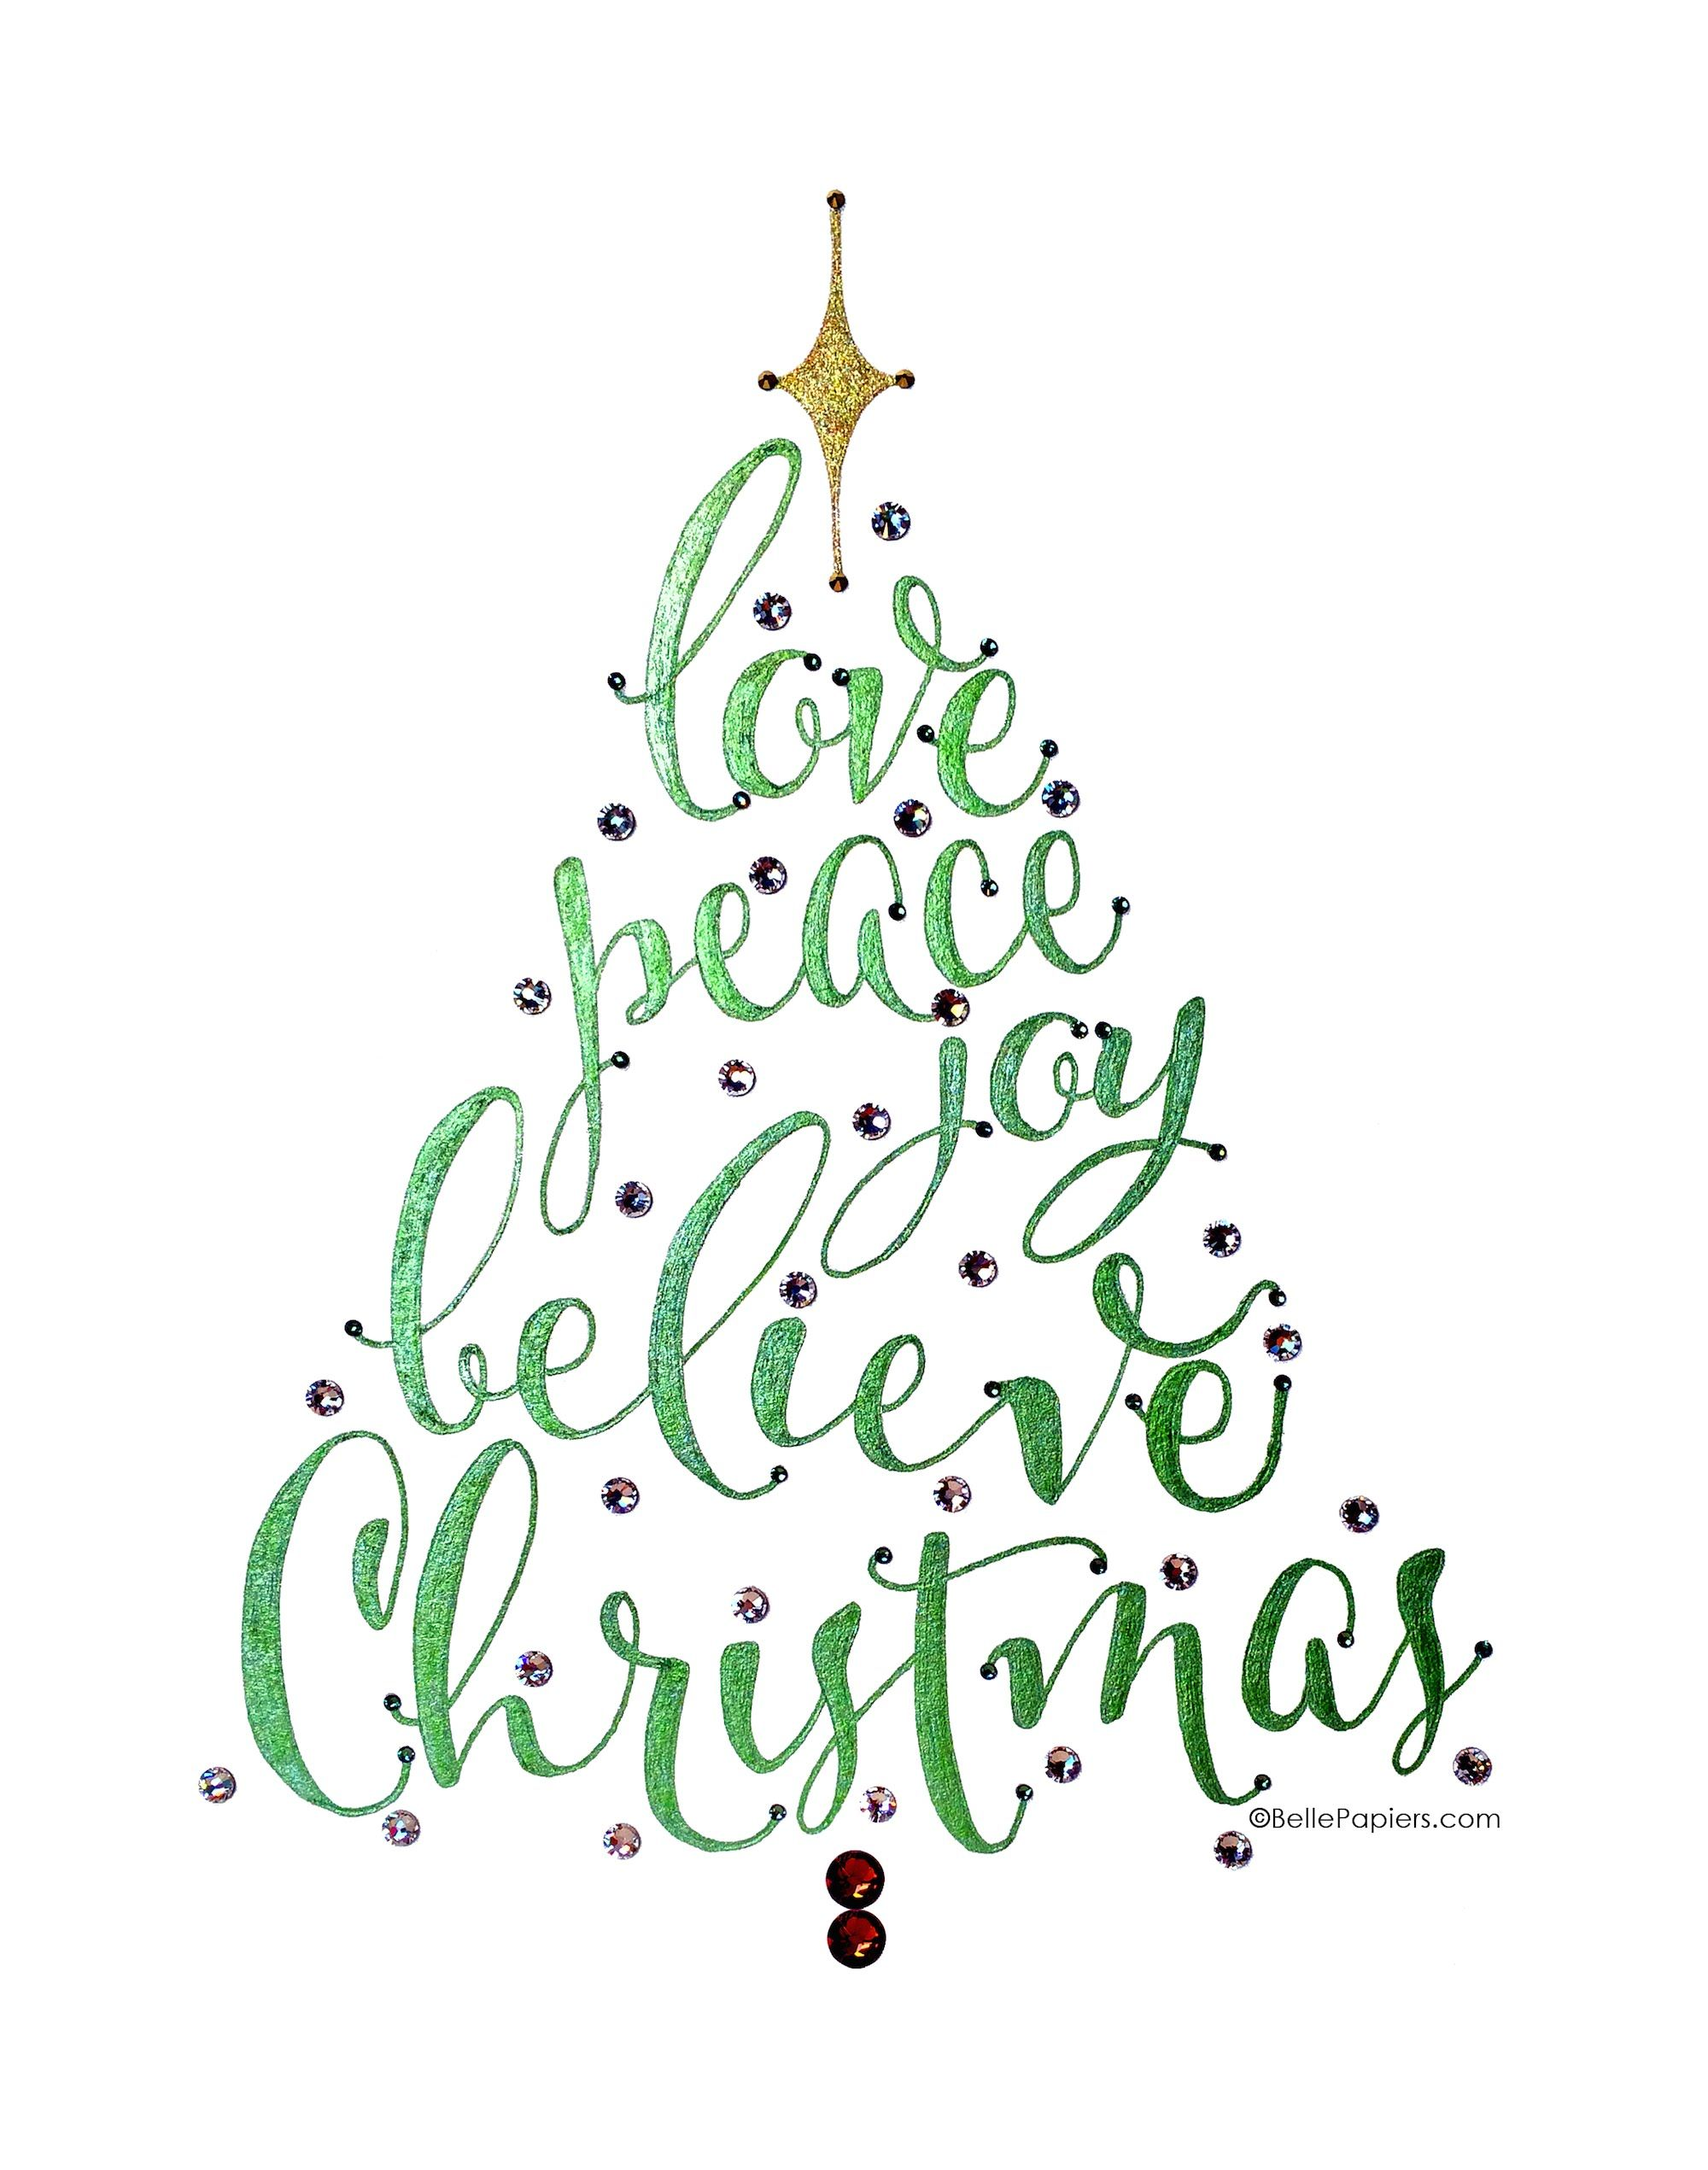 Christmas Tree Made Out Of Word Art Yahoo Image Search Results Christmas Calligraphy Christmas Words Xmas Letter